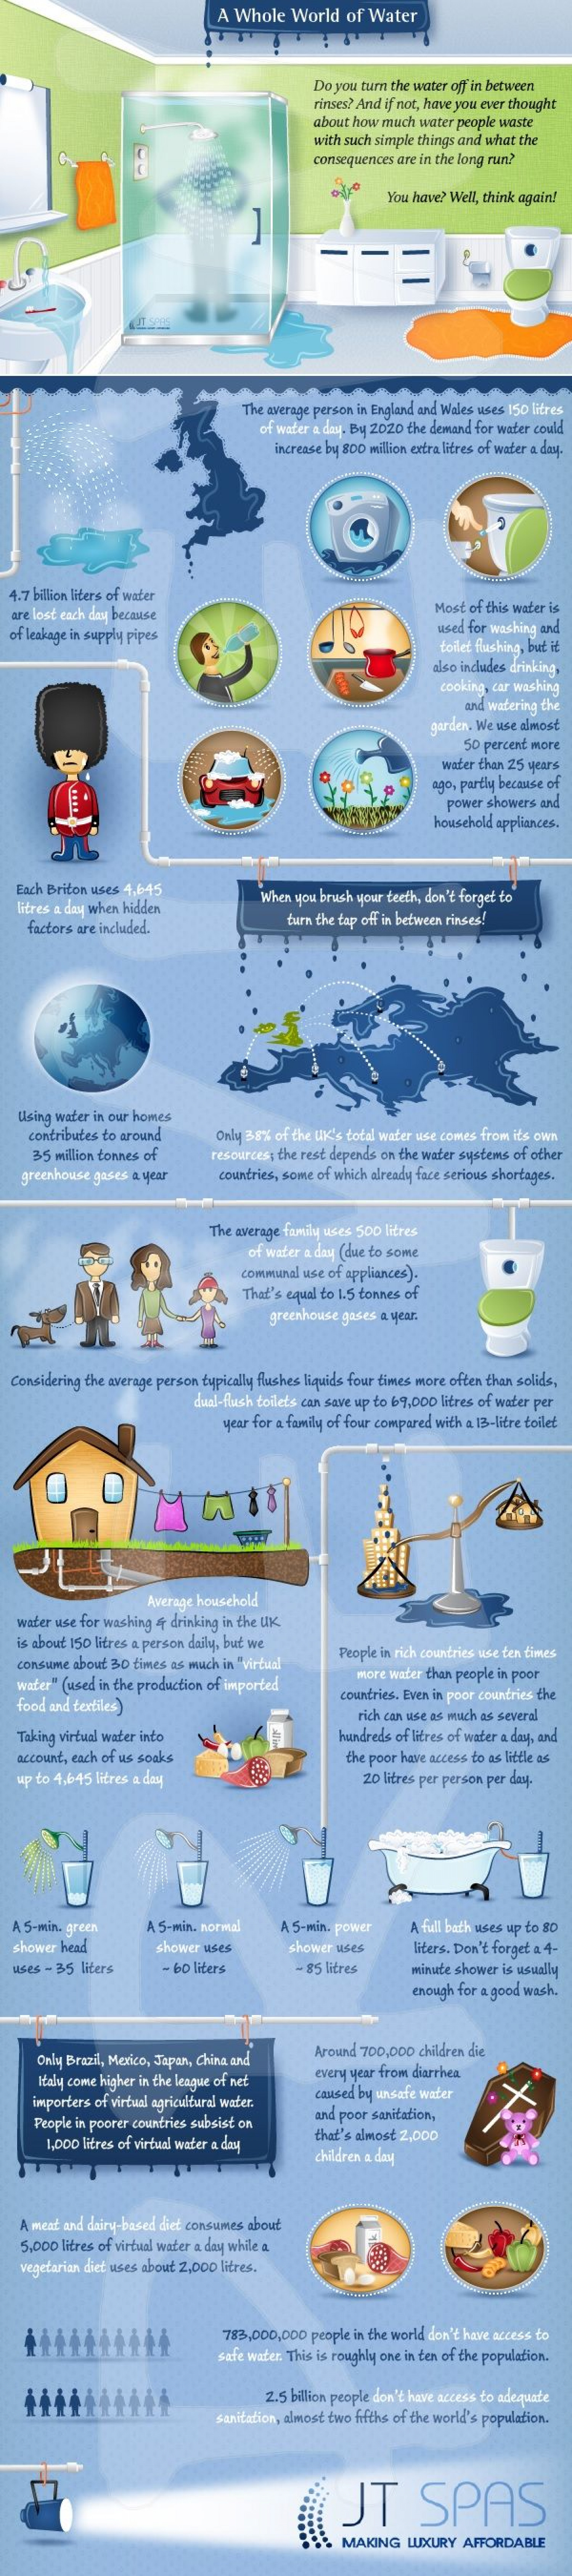 A World of Water Infographic